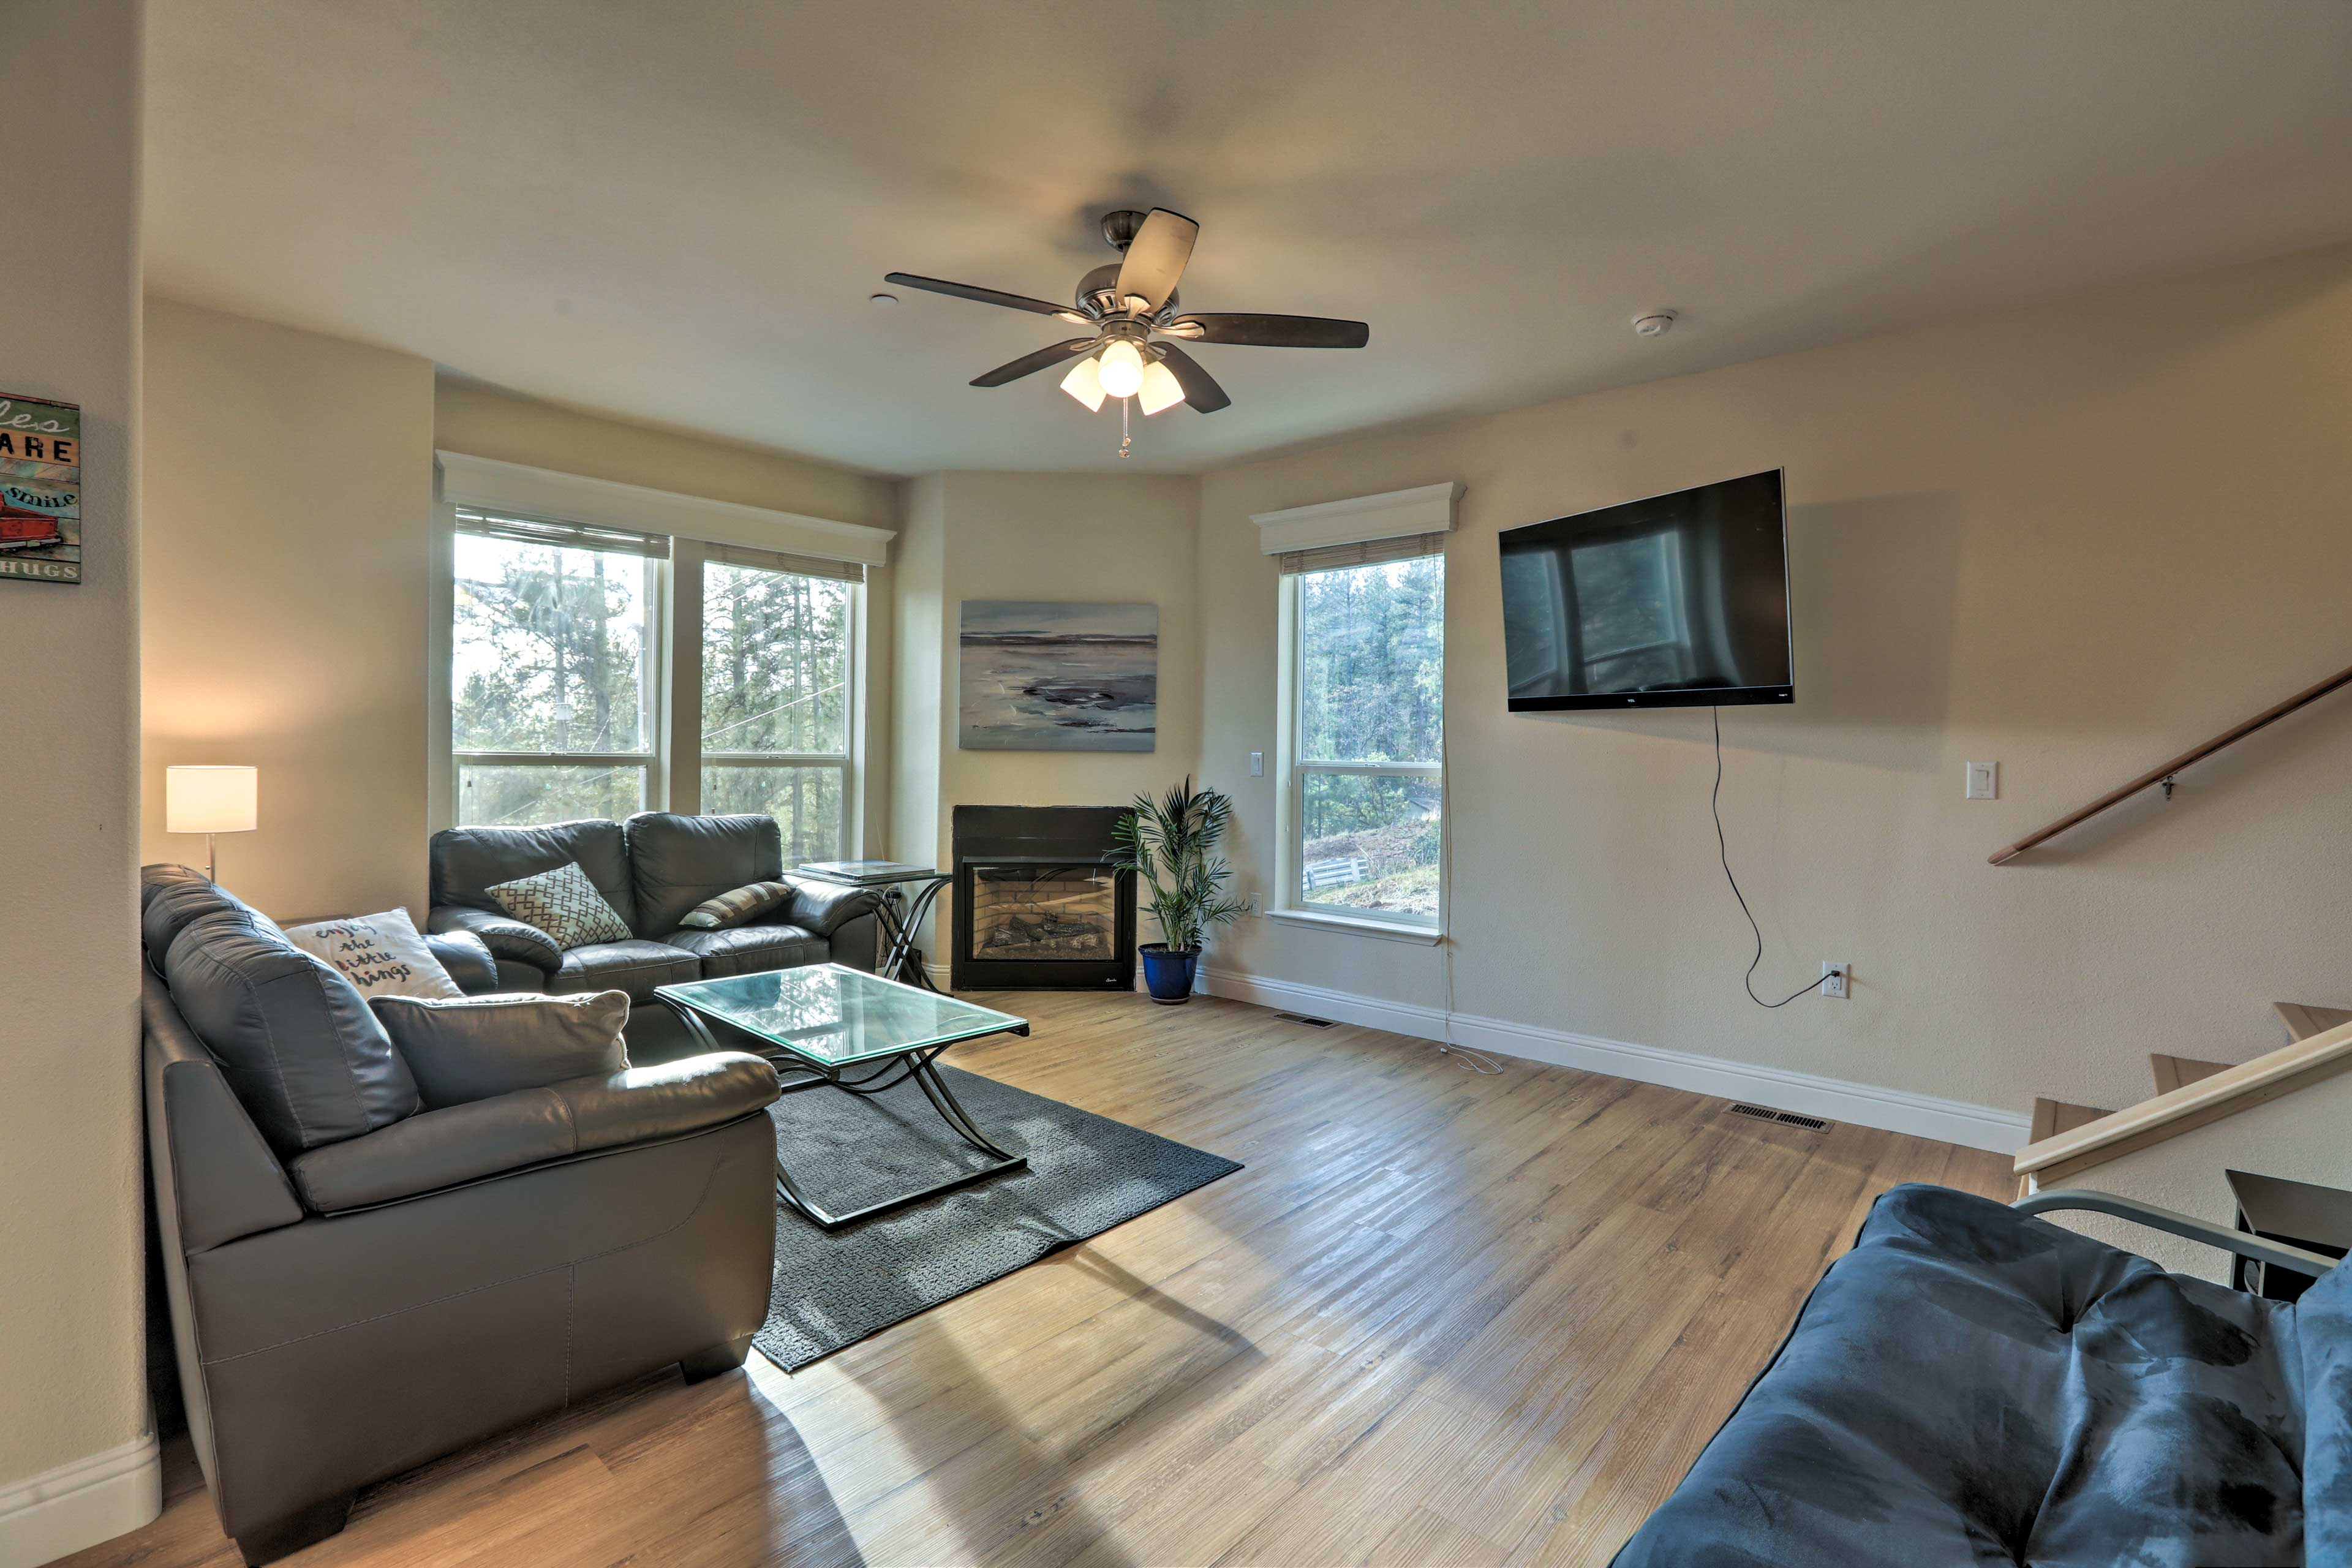 With 5 bedrooms and 3.5 bathrooms, everyone is sure to be comfortable.